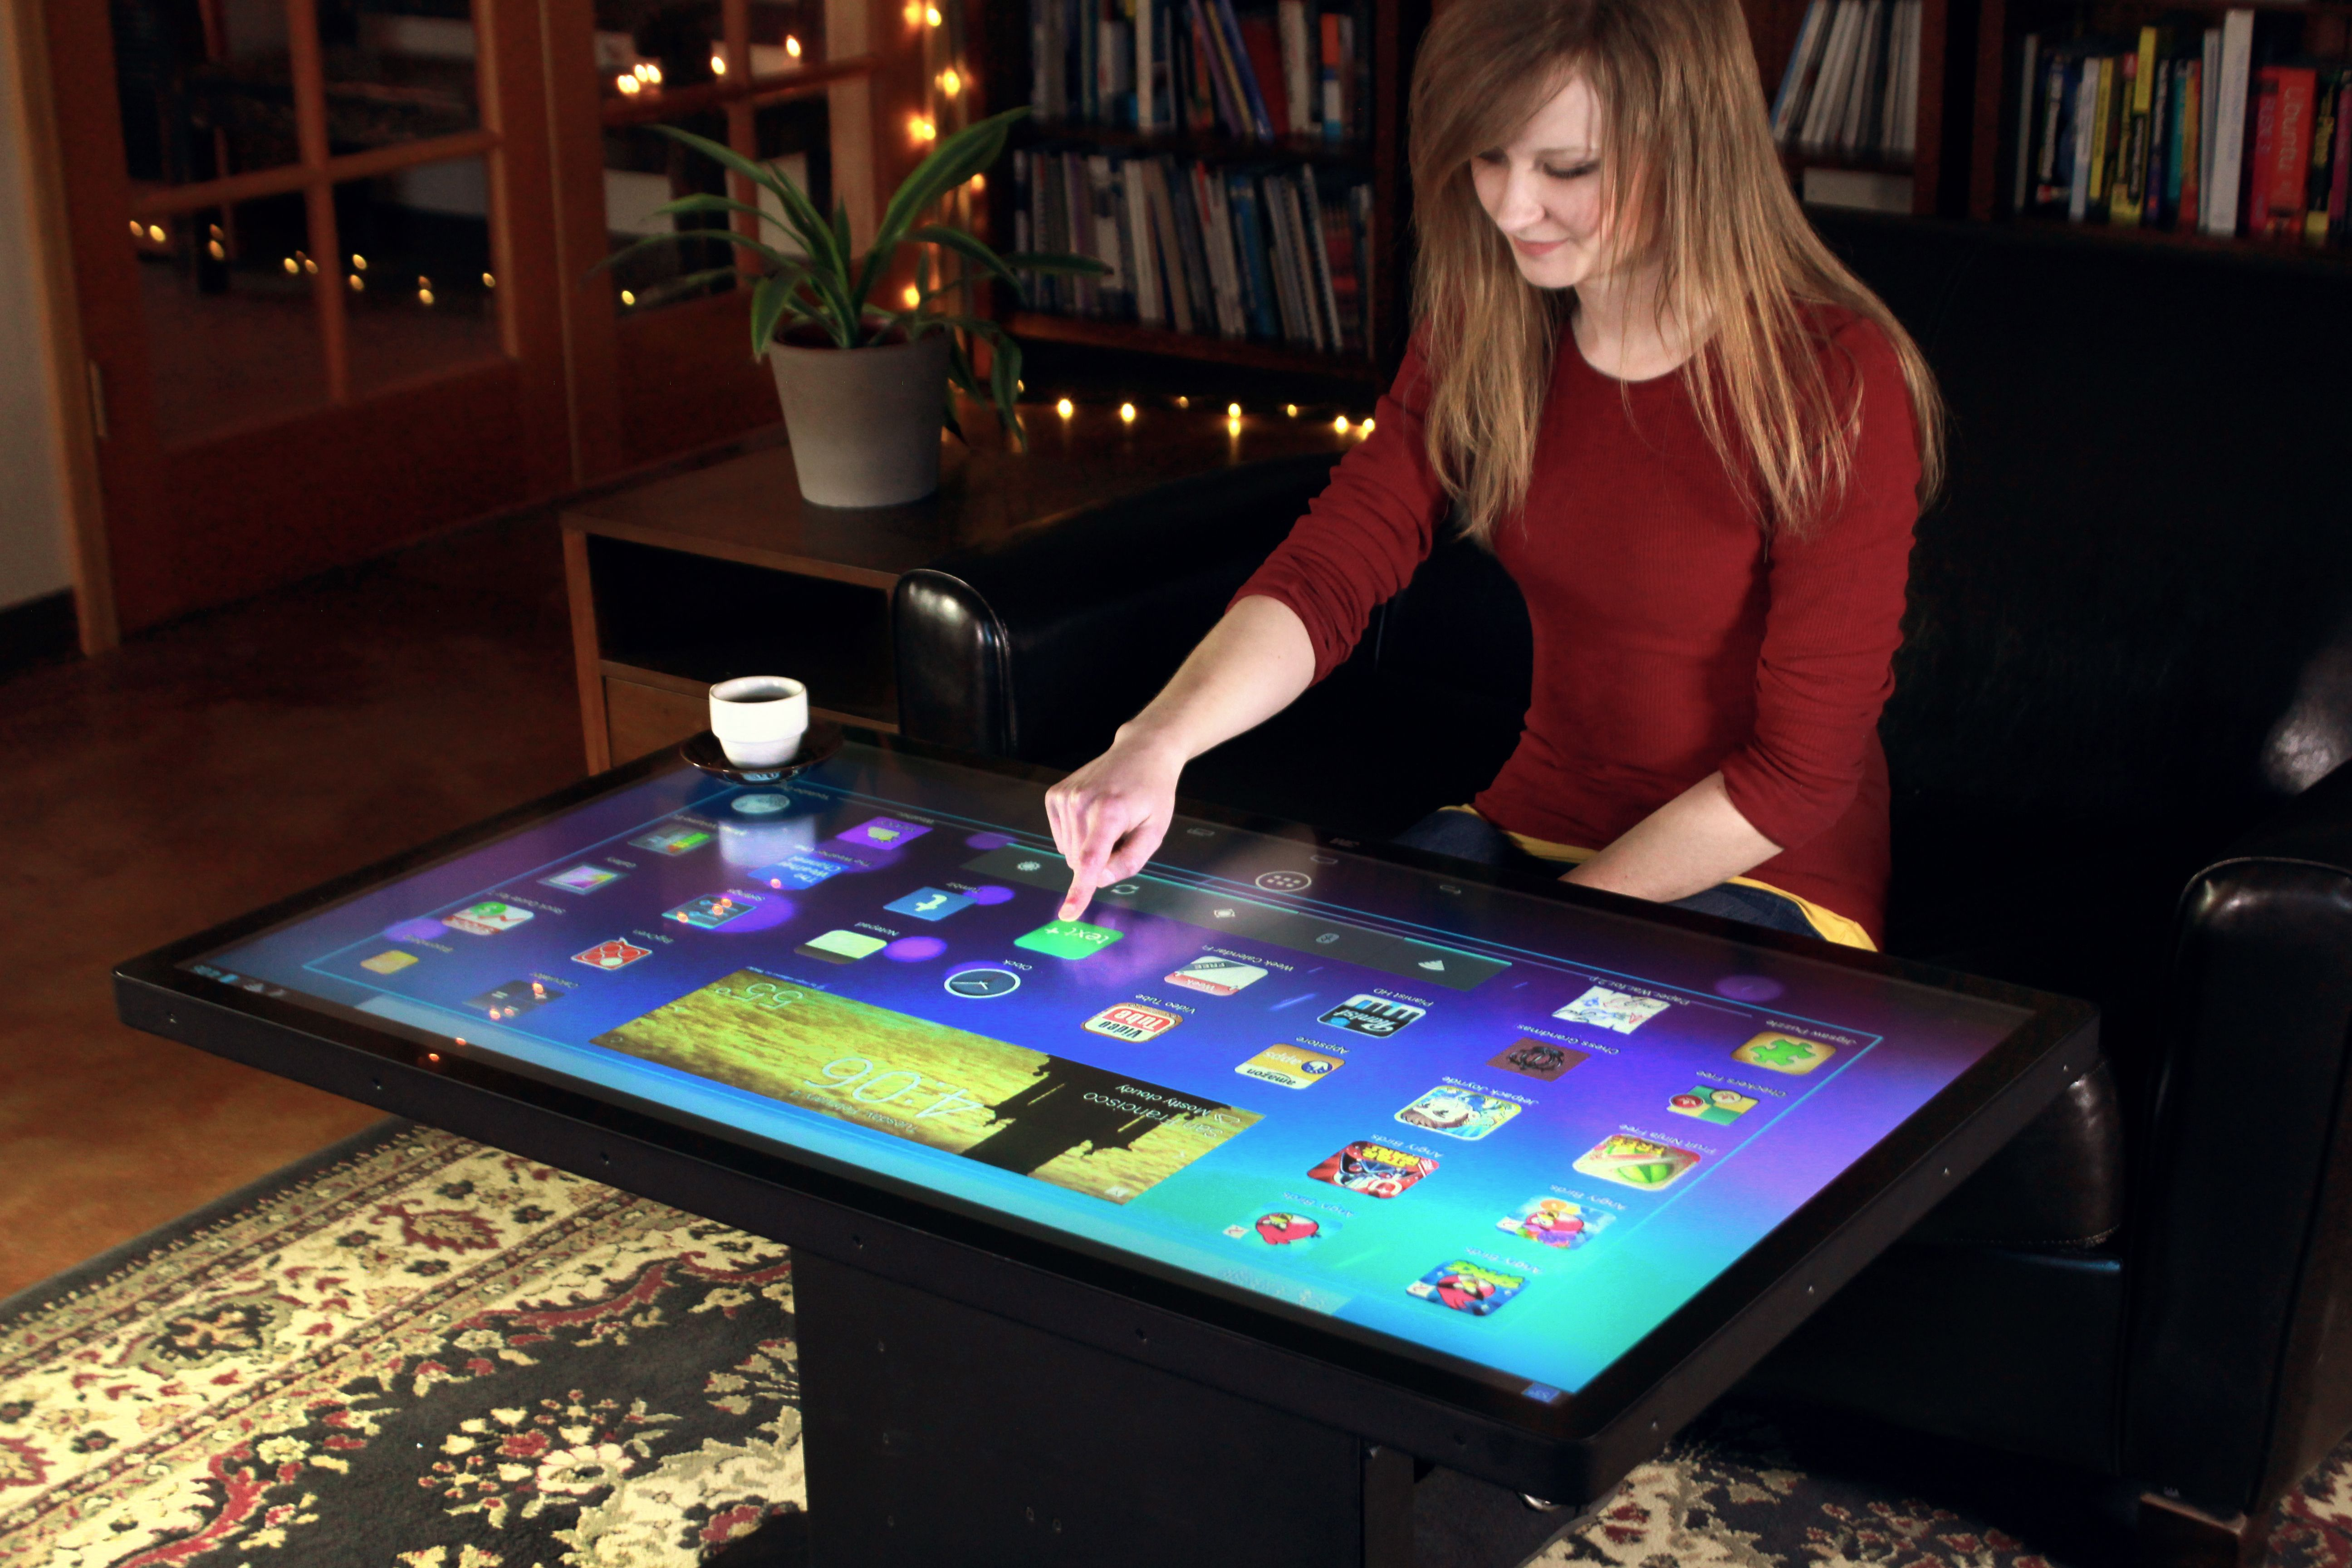 Android Coffee Table At Home Or At Work Ideum S New Platform Coffee Table With A 3m 46 Multitouch Disp Table Basse Tactile Tablette Informatique Gadget Utile